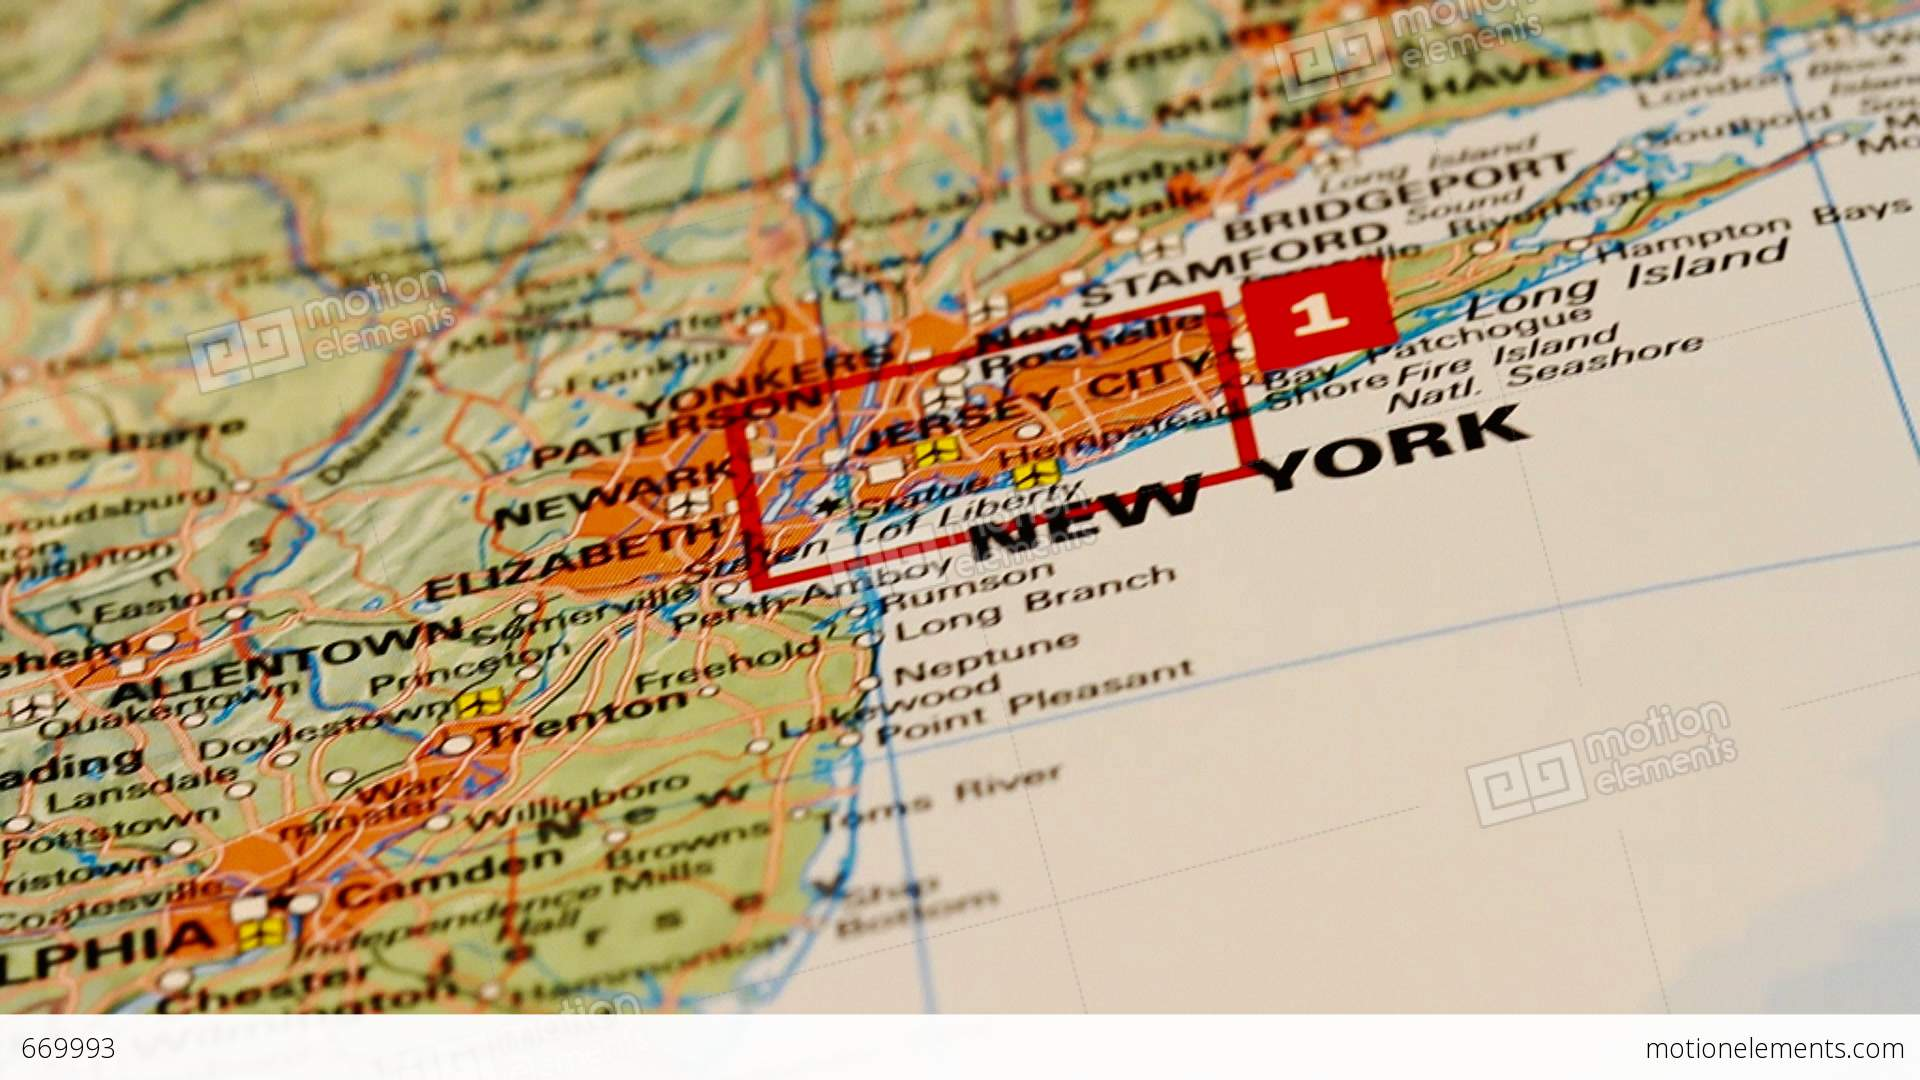 New York City Region  NYS Dept Of Environmental Conservation - Nyc map wallpaper